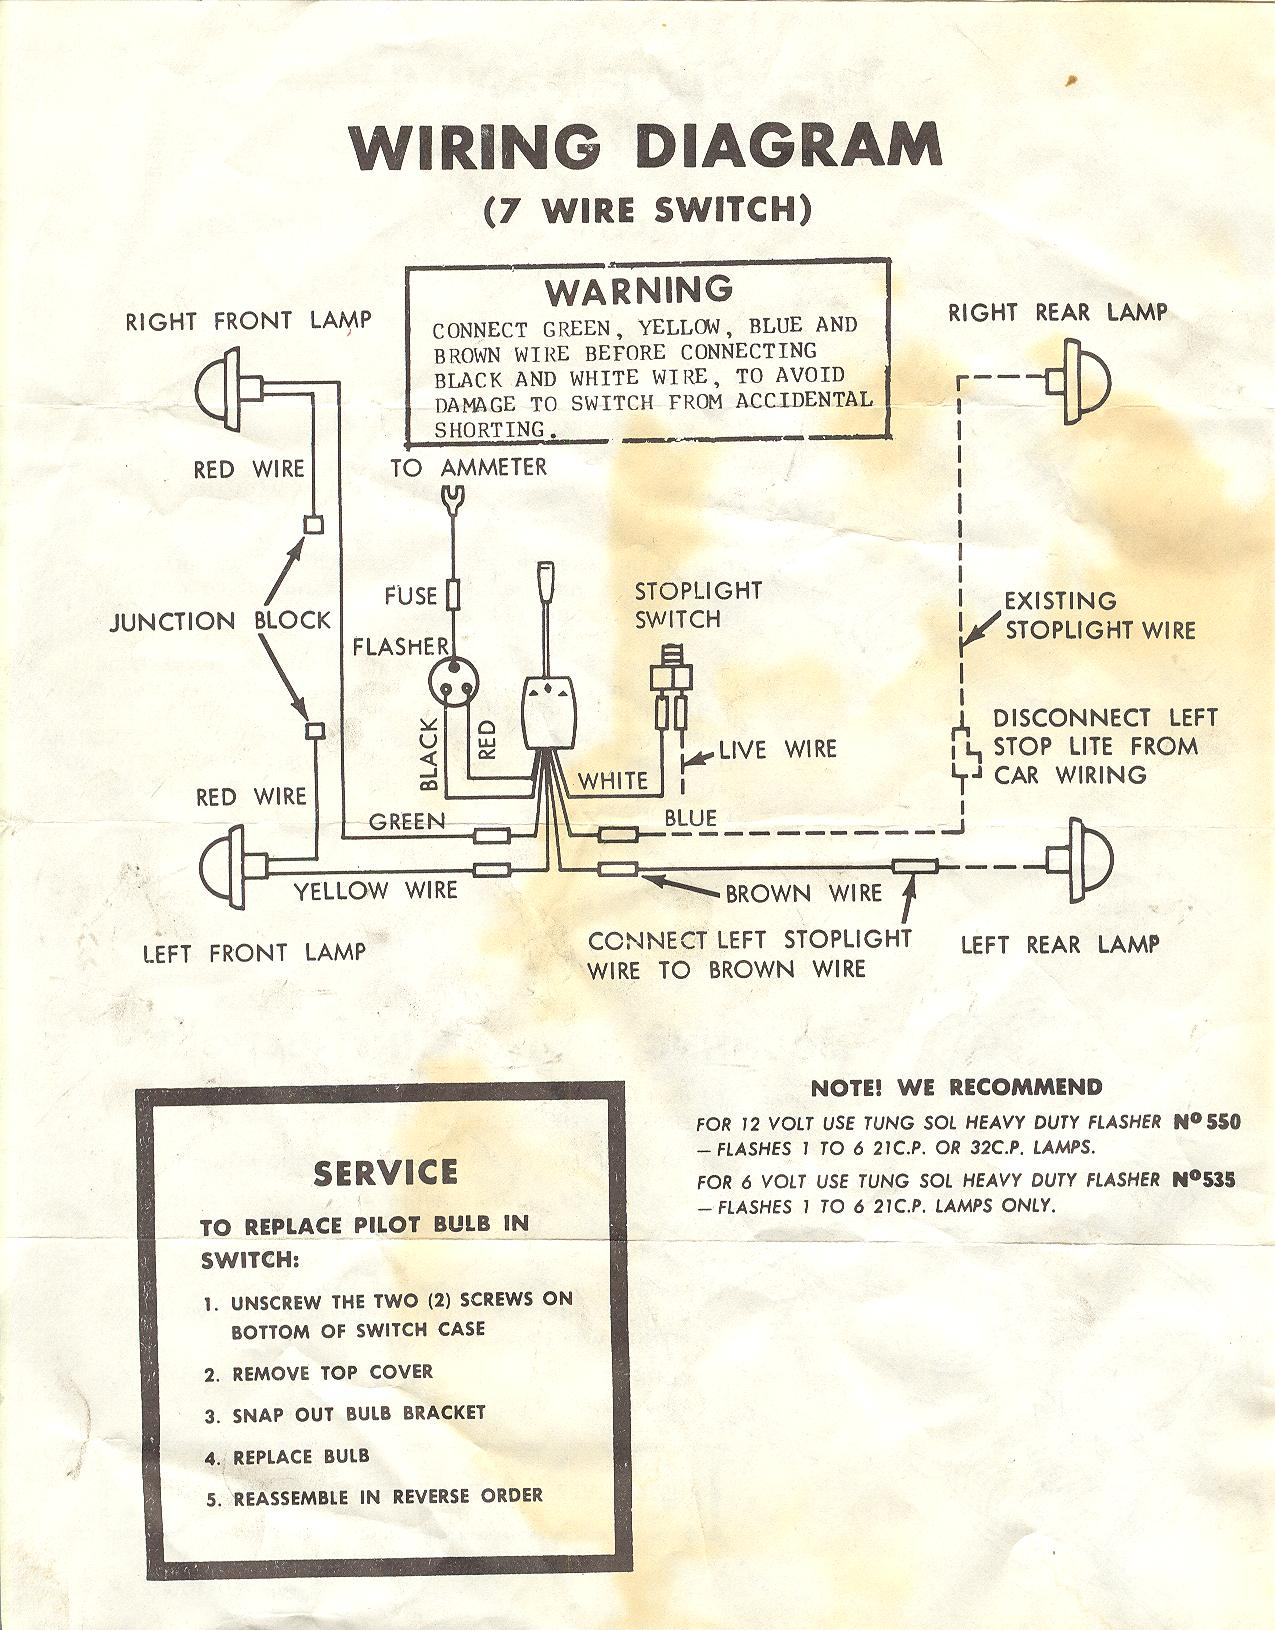 signal stat turn wiring diagram wiring diagram signal stat 900 5 wires nilza